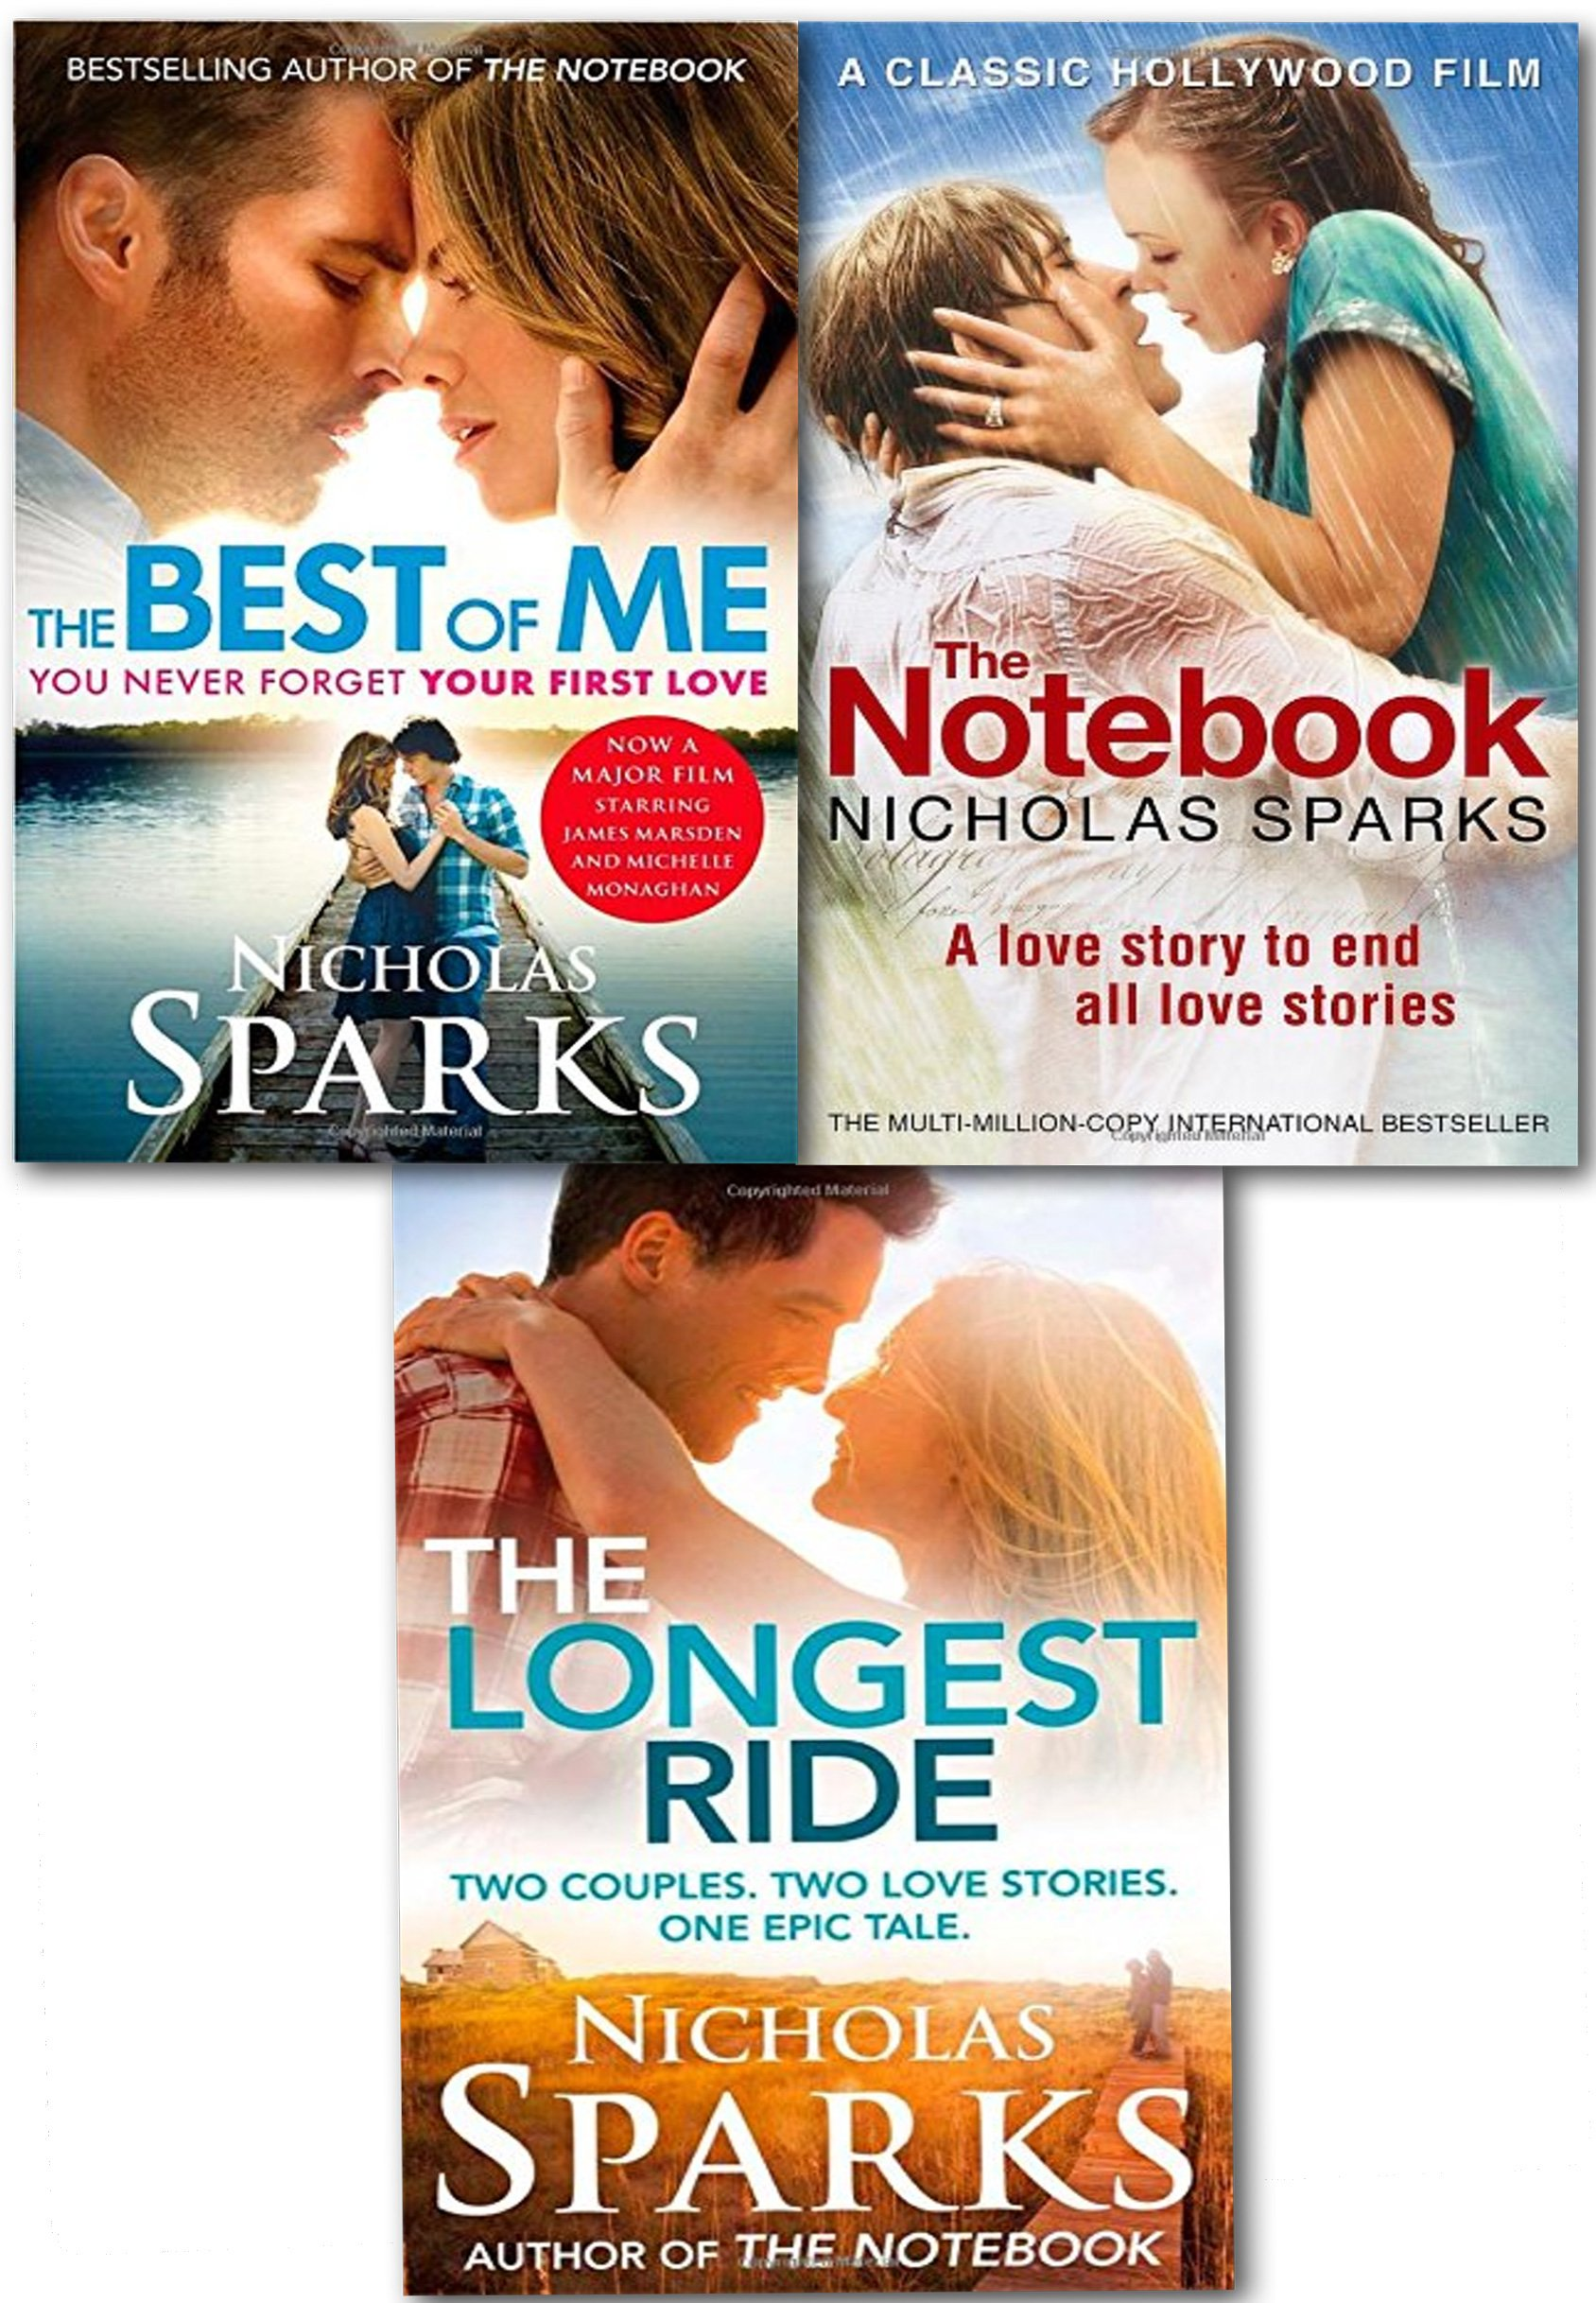 nicholas sparks love stories collection 3 books set the notebook nicholas sparks love stories collection 3 books set the notebook the best of me film tie in the longest ride co uk nicholas sparks